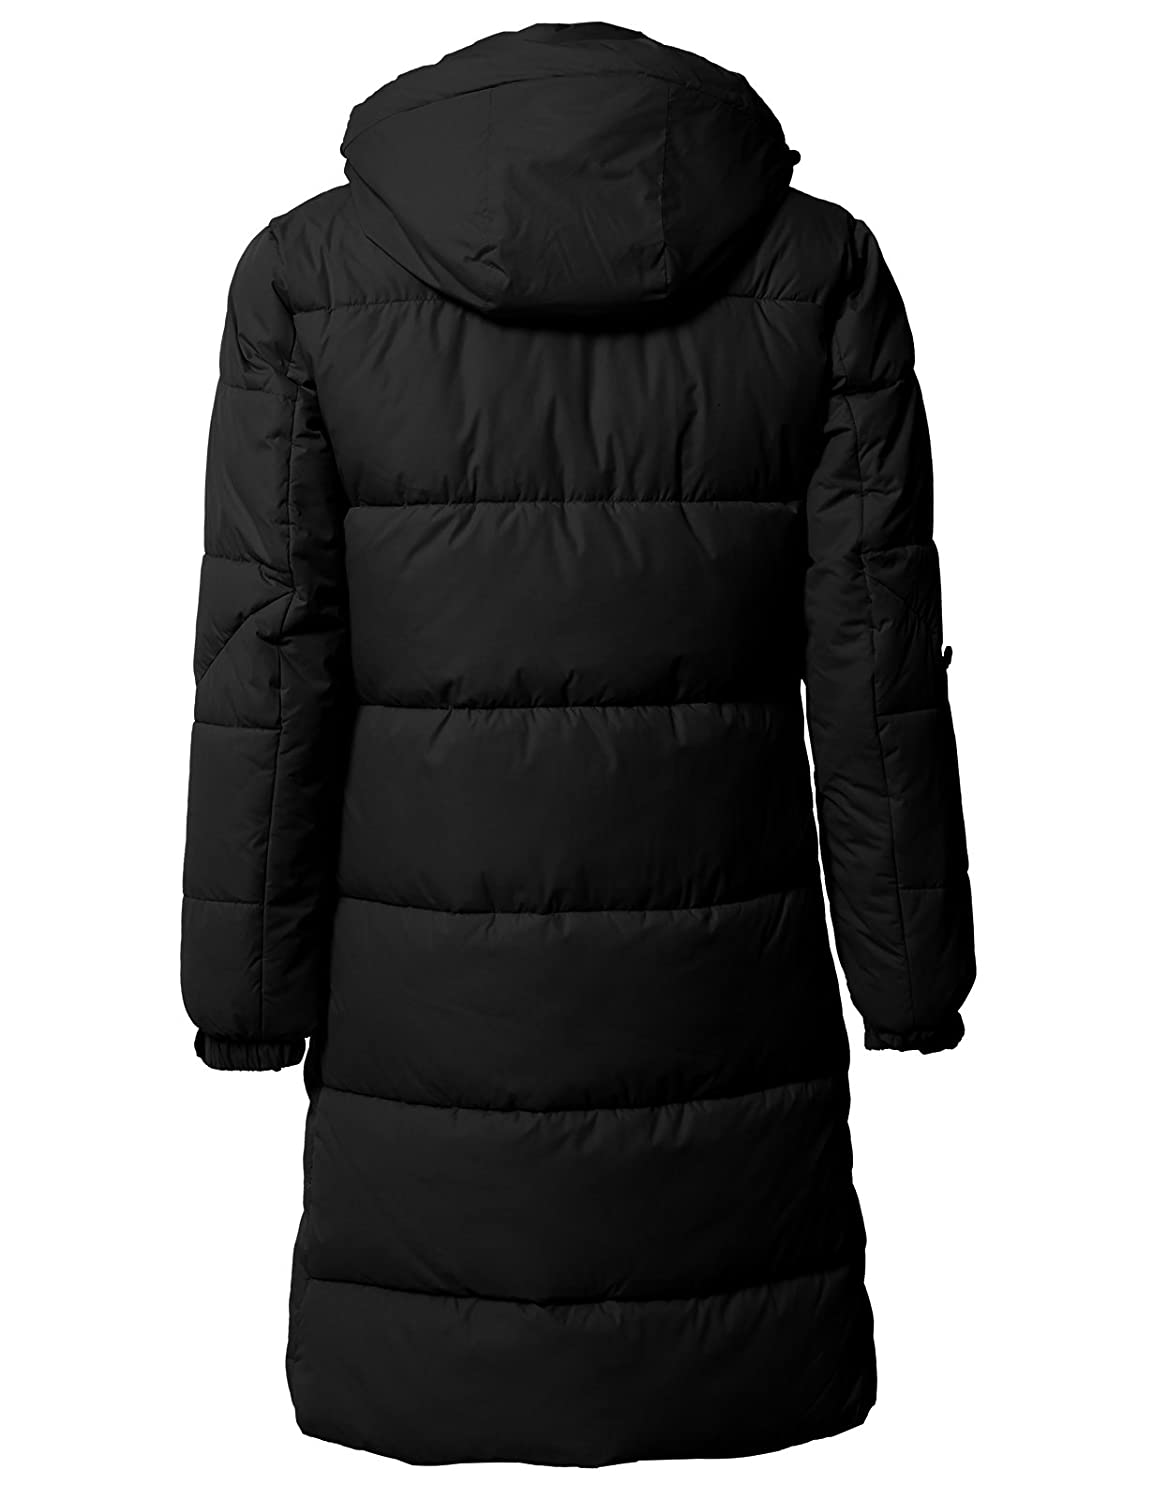 be396df1d H2H Mens Active Puffer Jackets Outerwear Winter Quilted Long Coats with  Hoodie